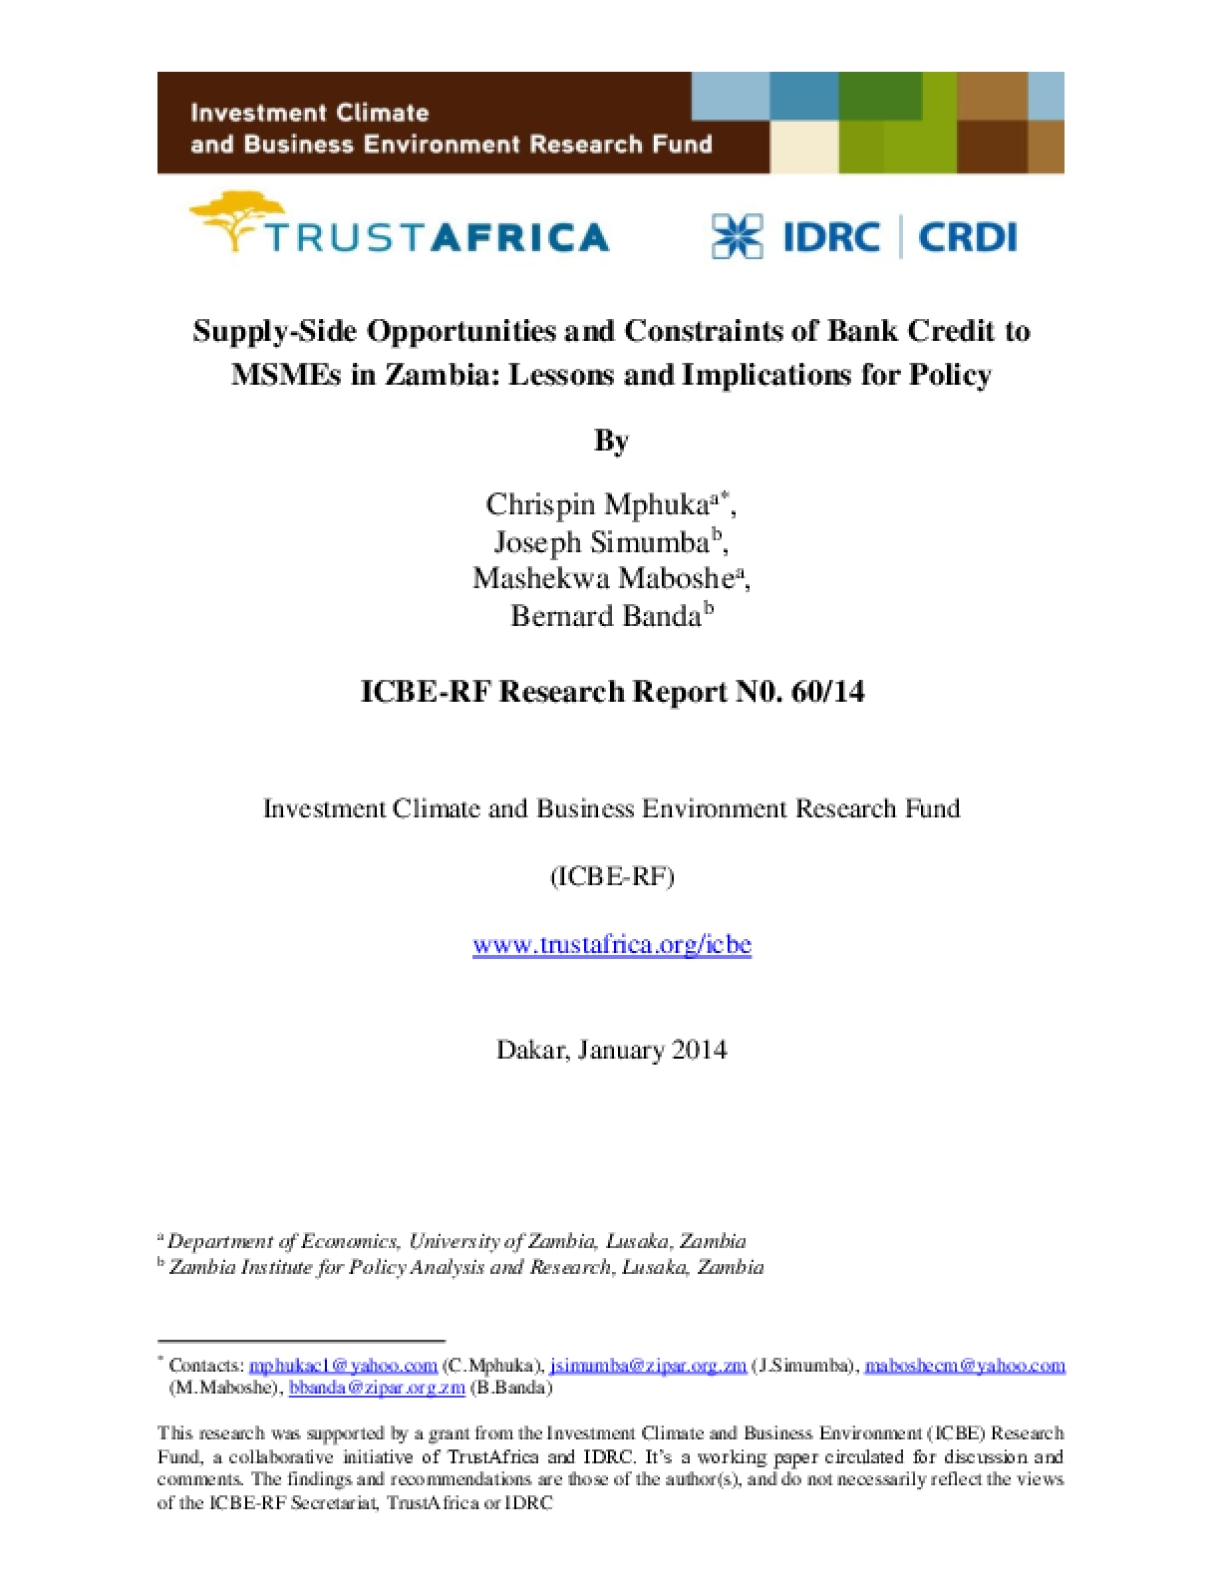 Supply-Side Opportunities and Constraints of Bank Credit to MSMEs in Zambia: Lessons and Implications for Policy